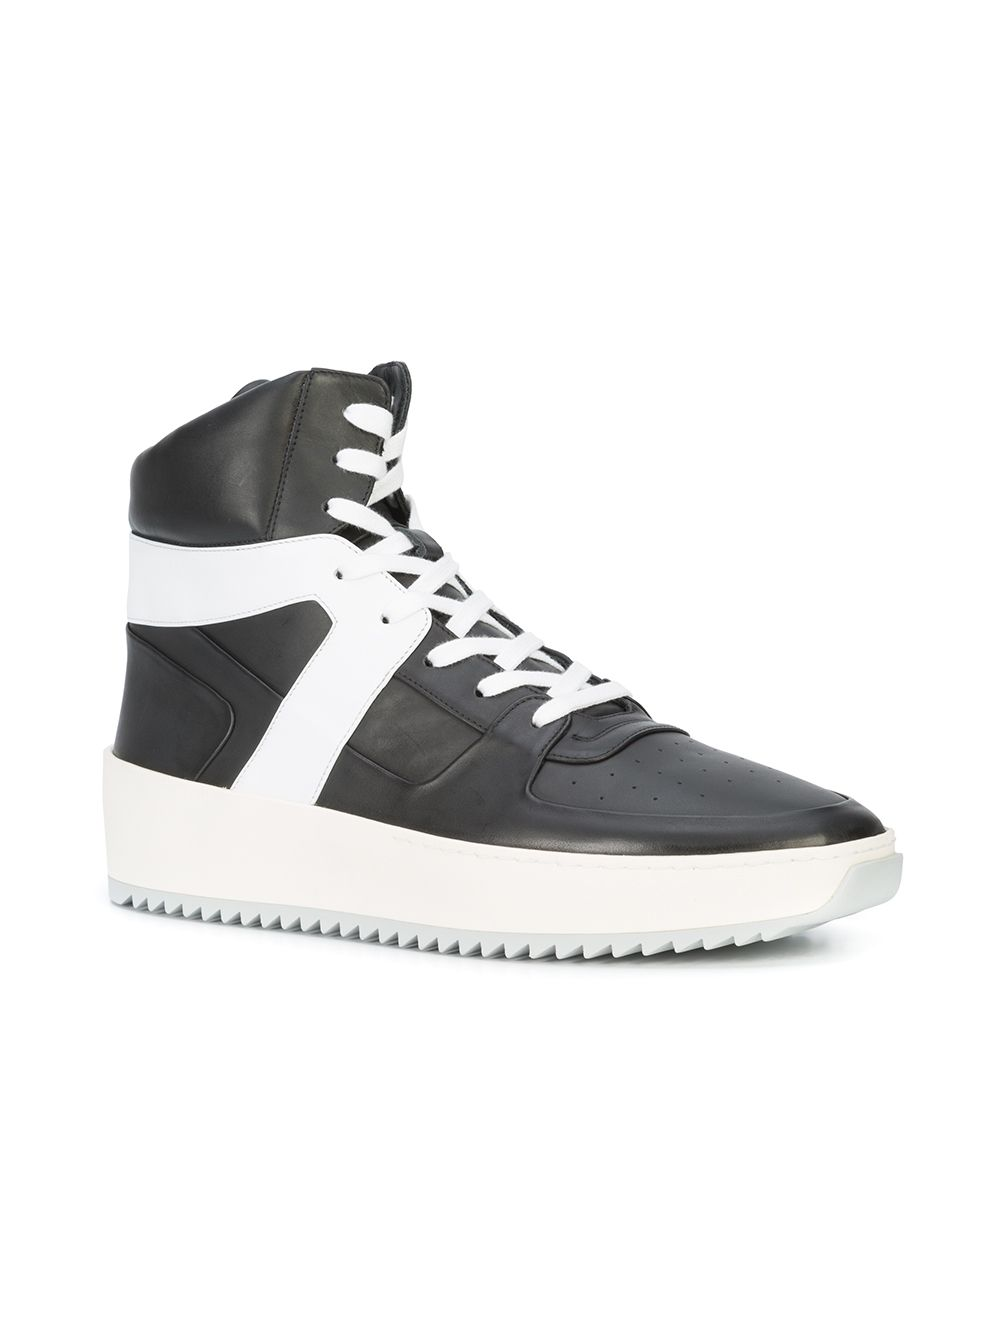 FEAR OF GOD SNEAKERS